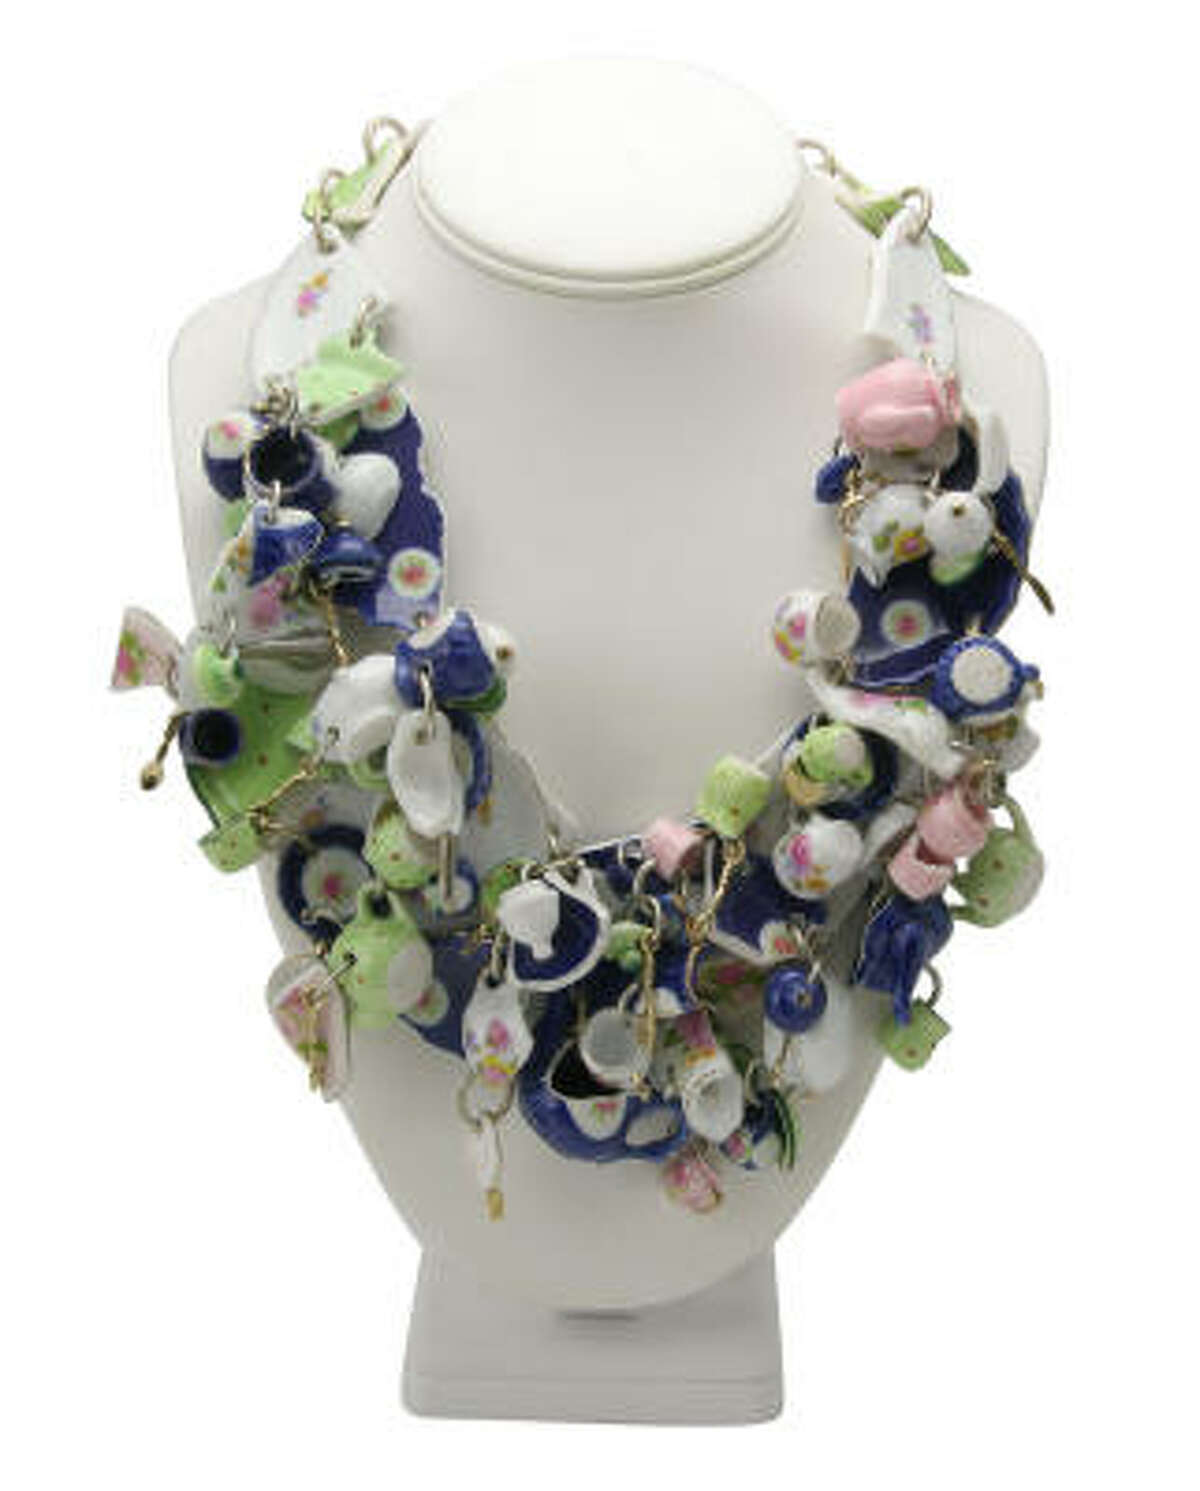 A necklace with multiple ceramic crockery charms by Tom Binns for Disney Couture, Alice in Wonderland line.